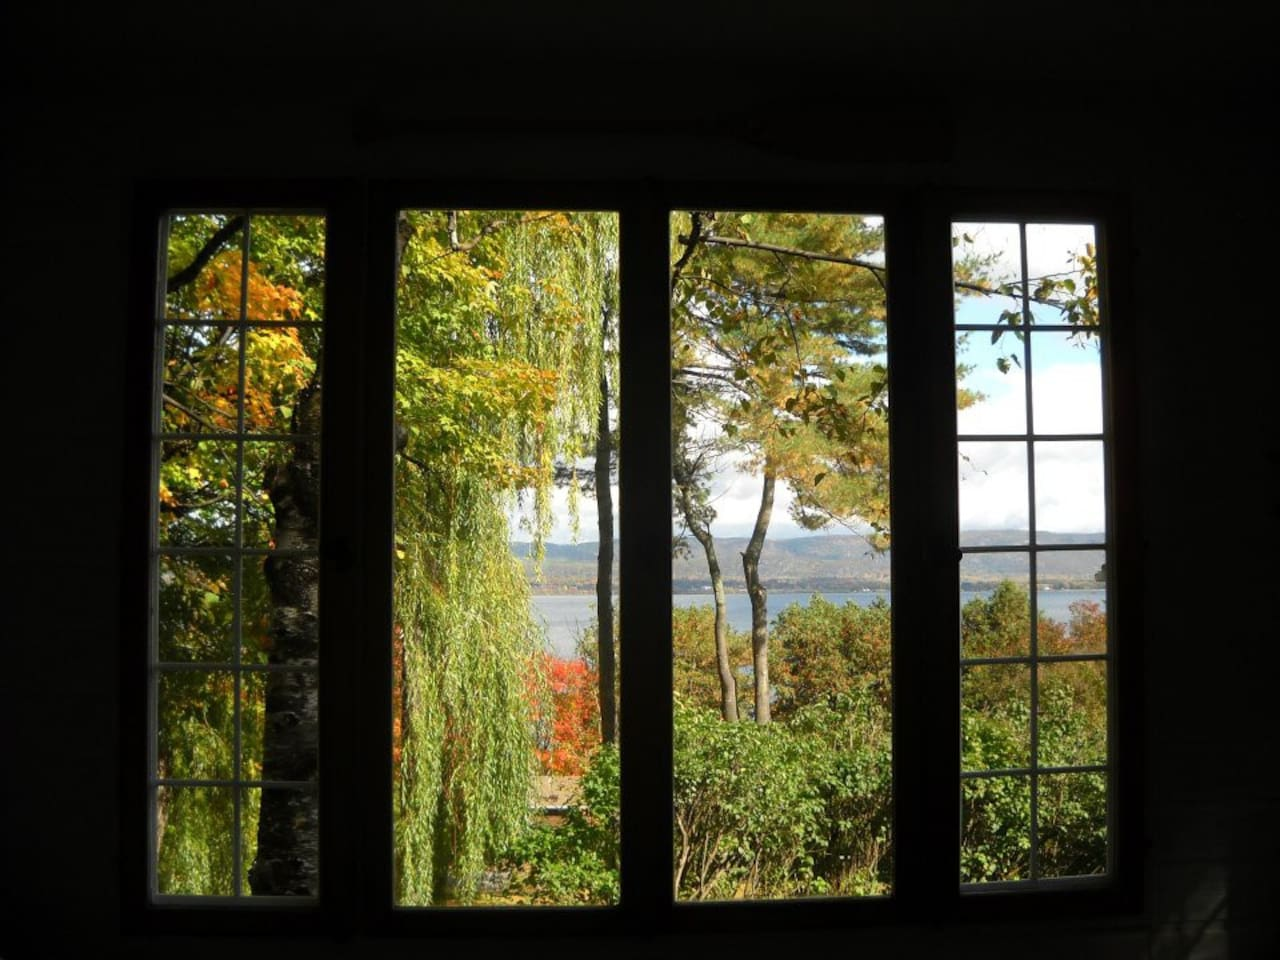 Late summer view from guest cottage. The view is similar from the great room in the main house.